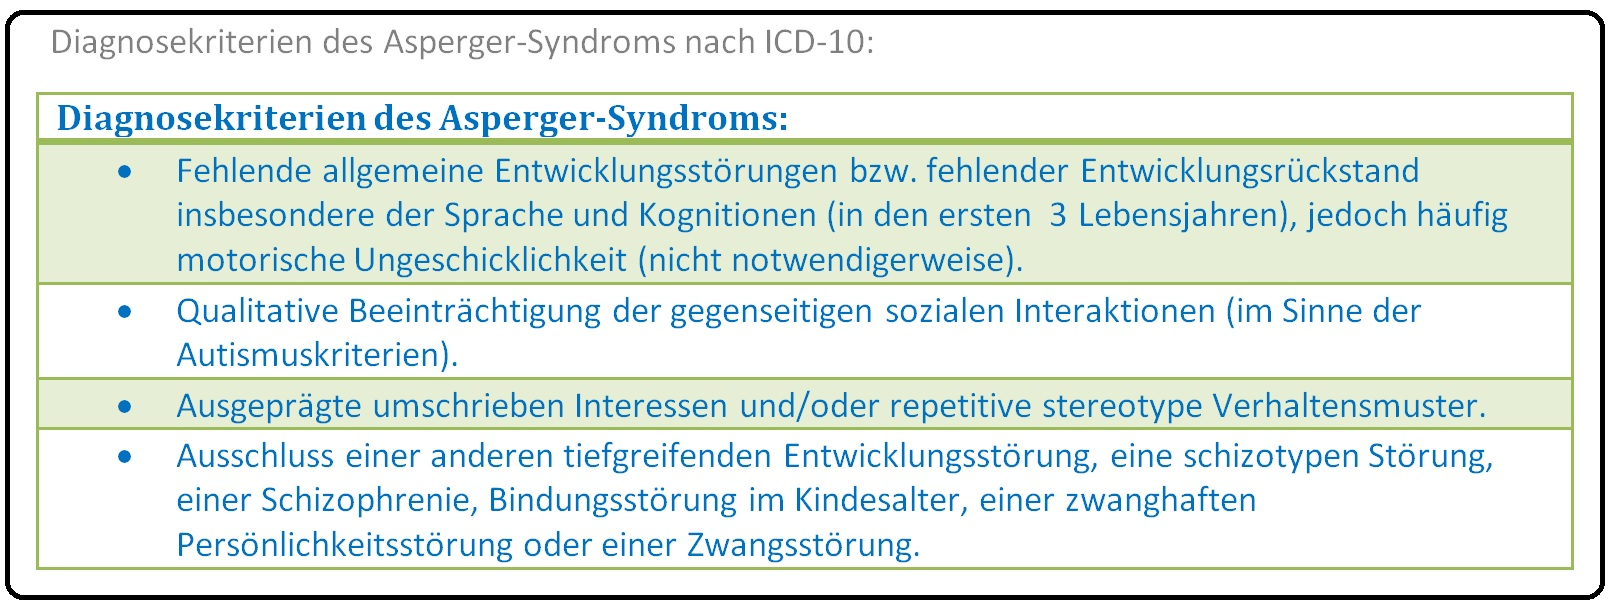 516 Diagnosekriterien des Asperger Syndroms nach ICD 10